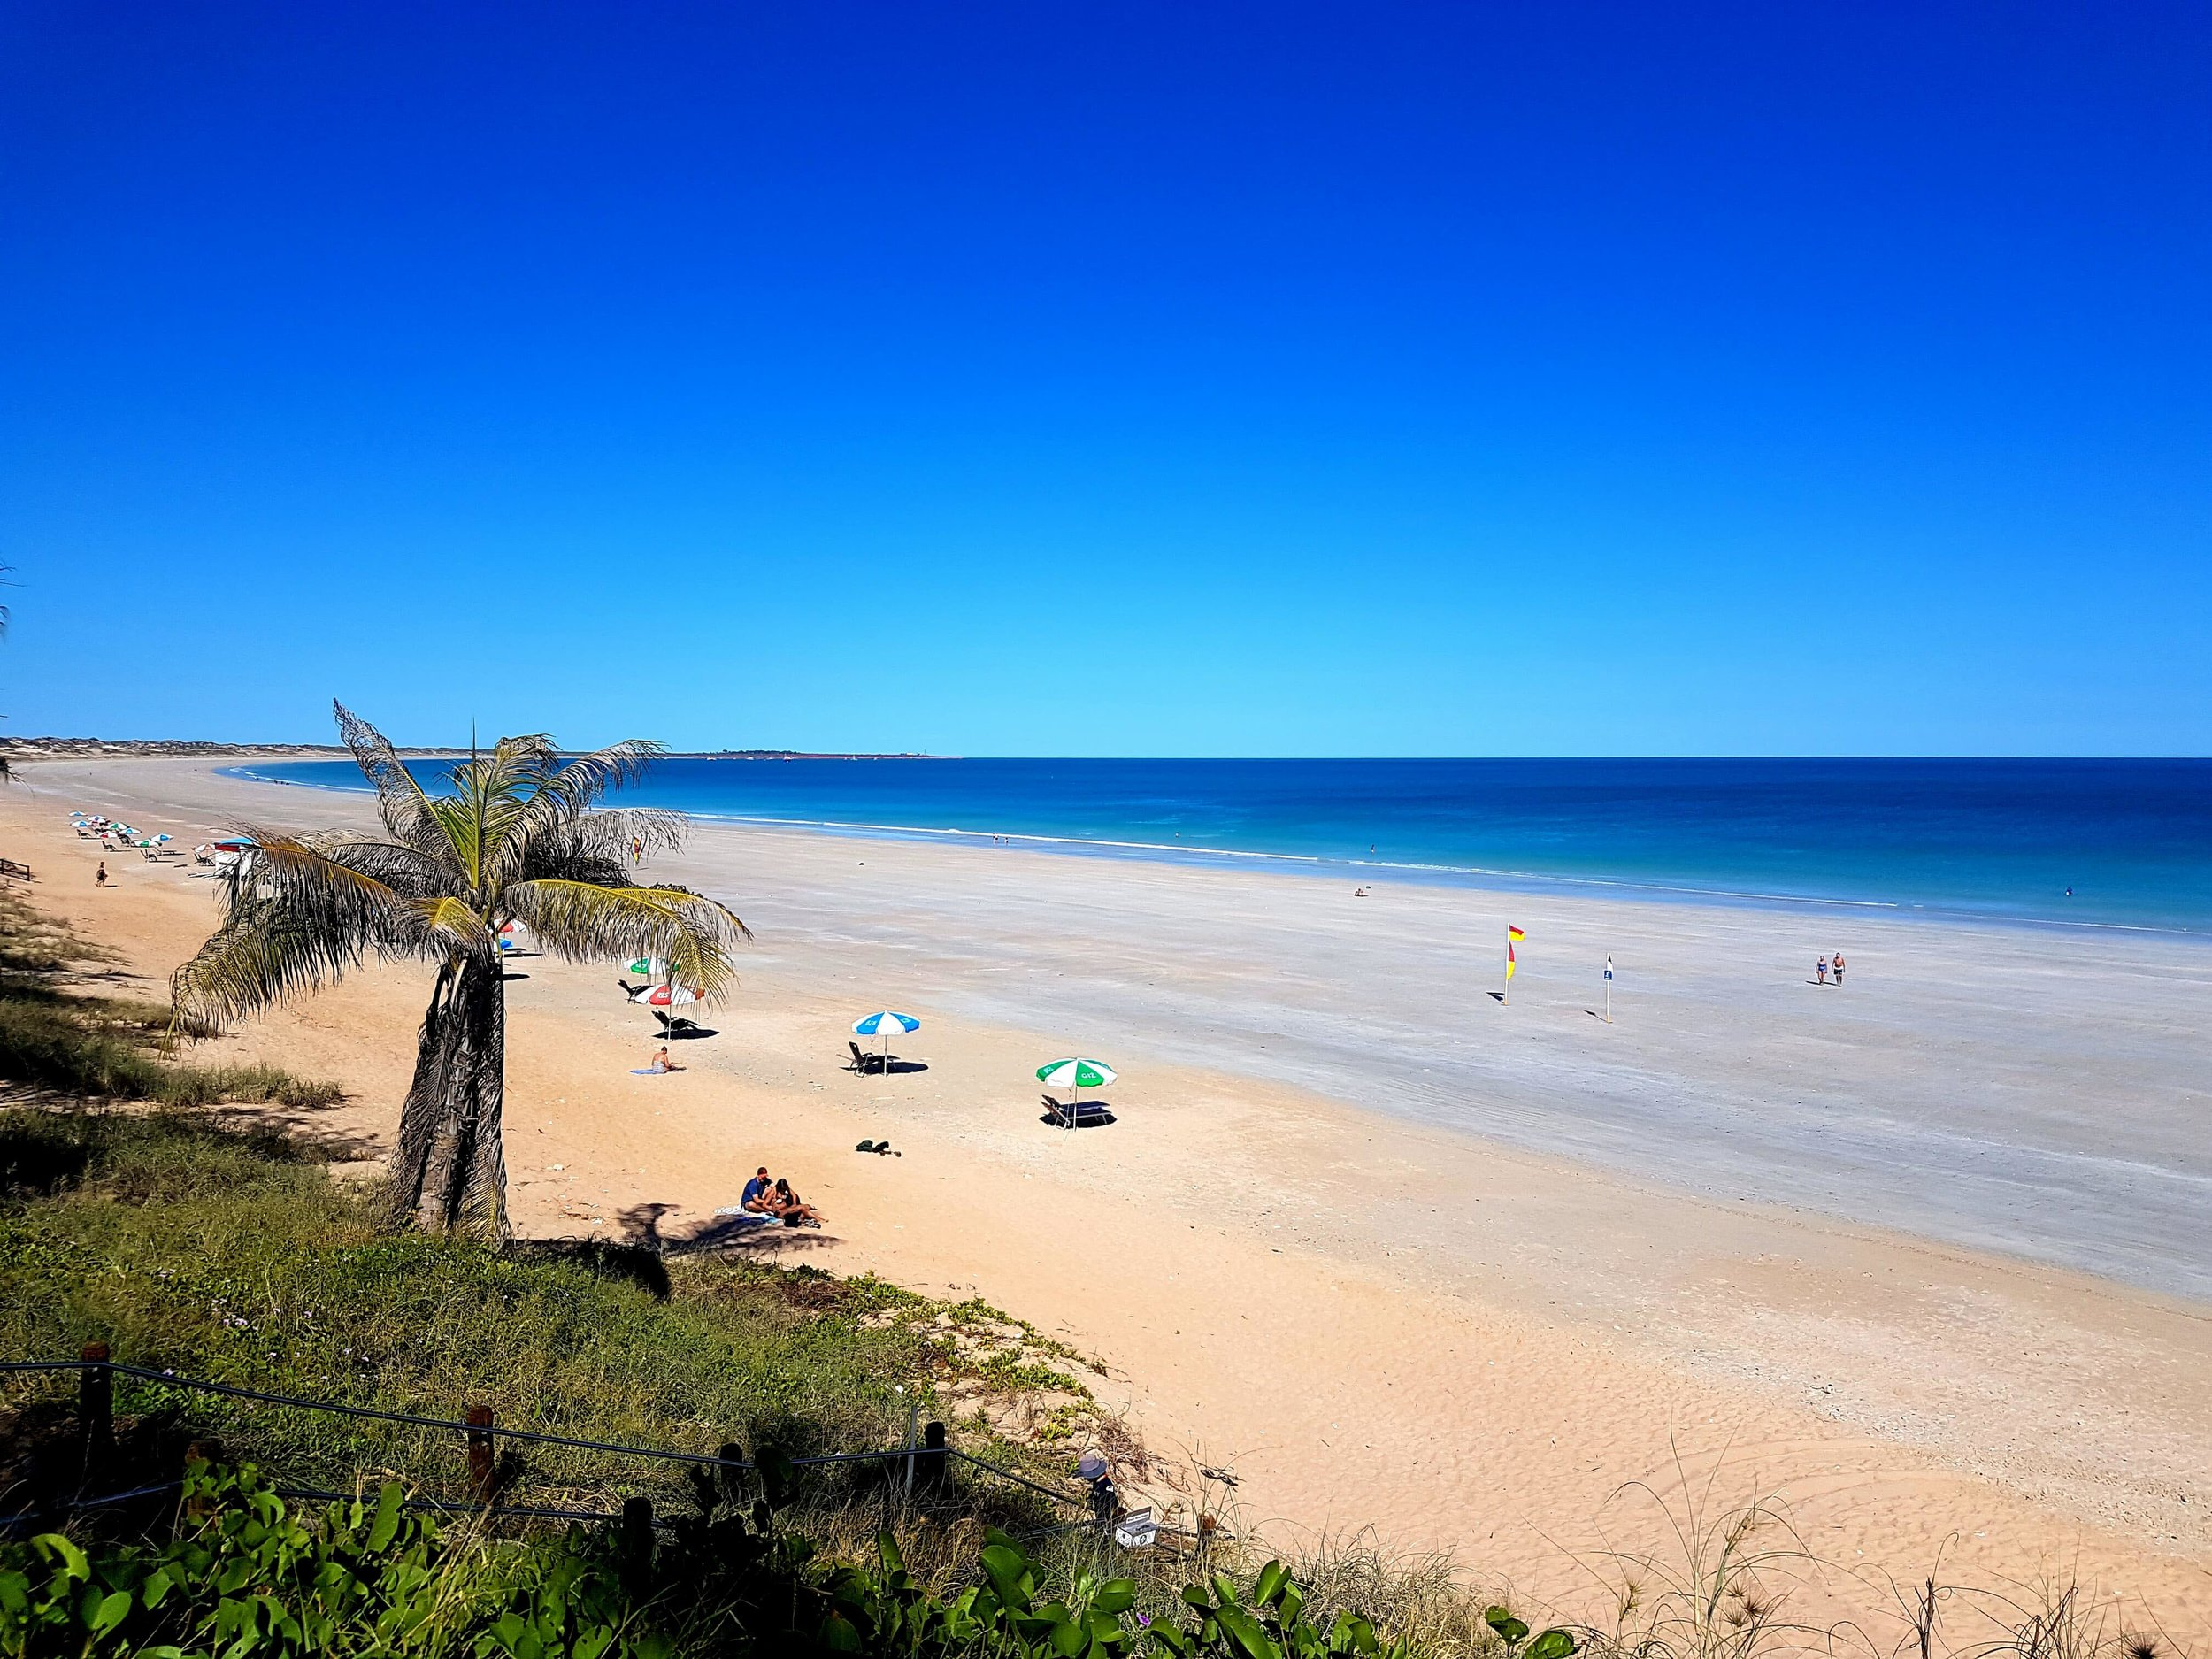 Broome's famous Cable beach is worth a visit